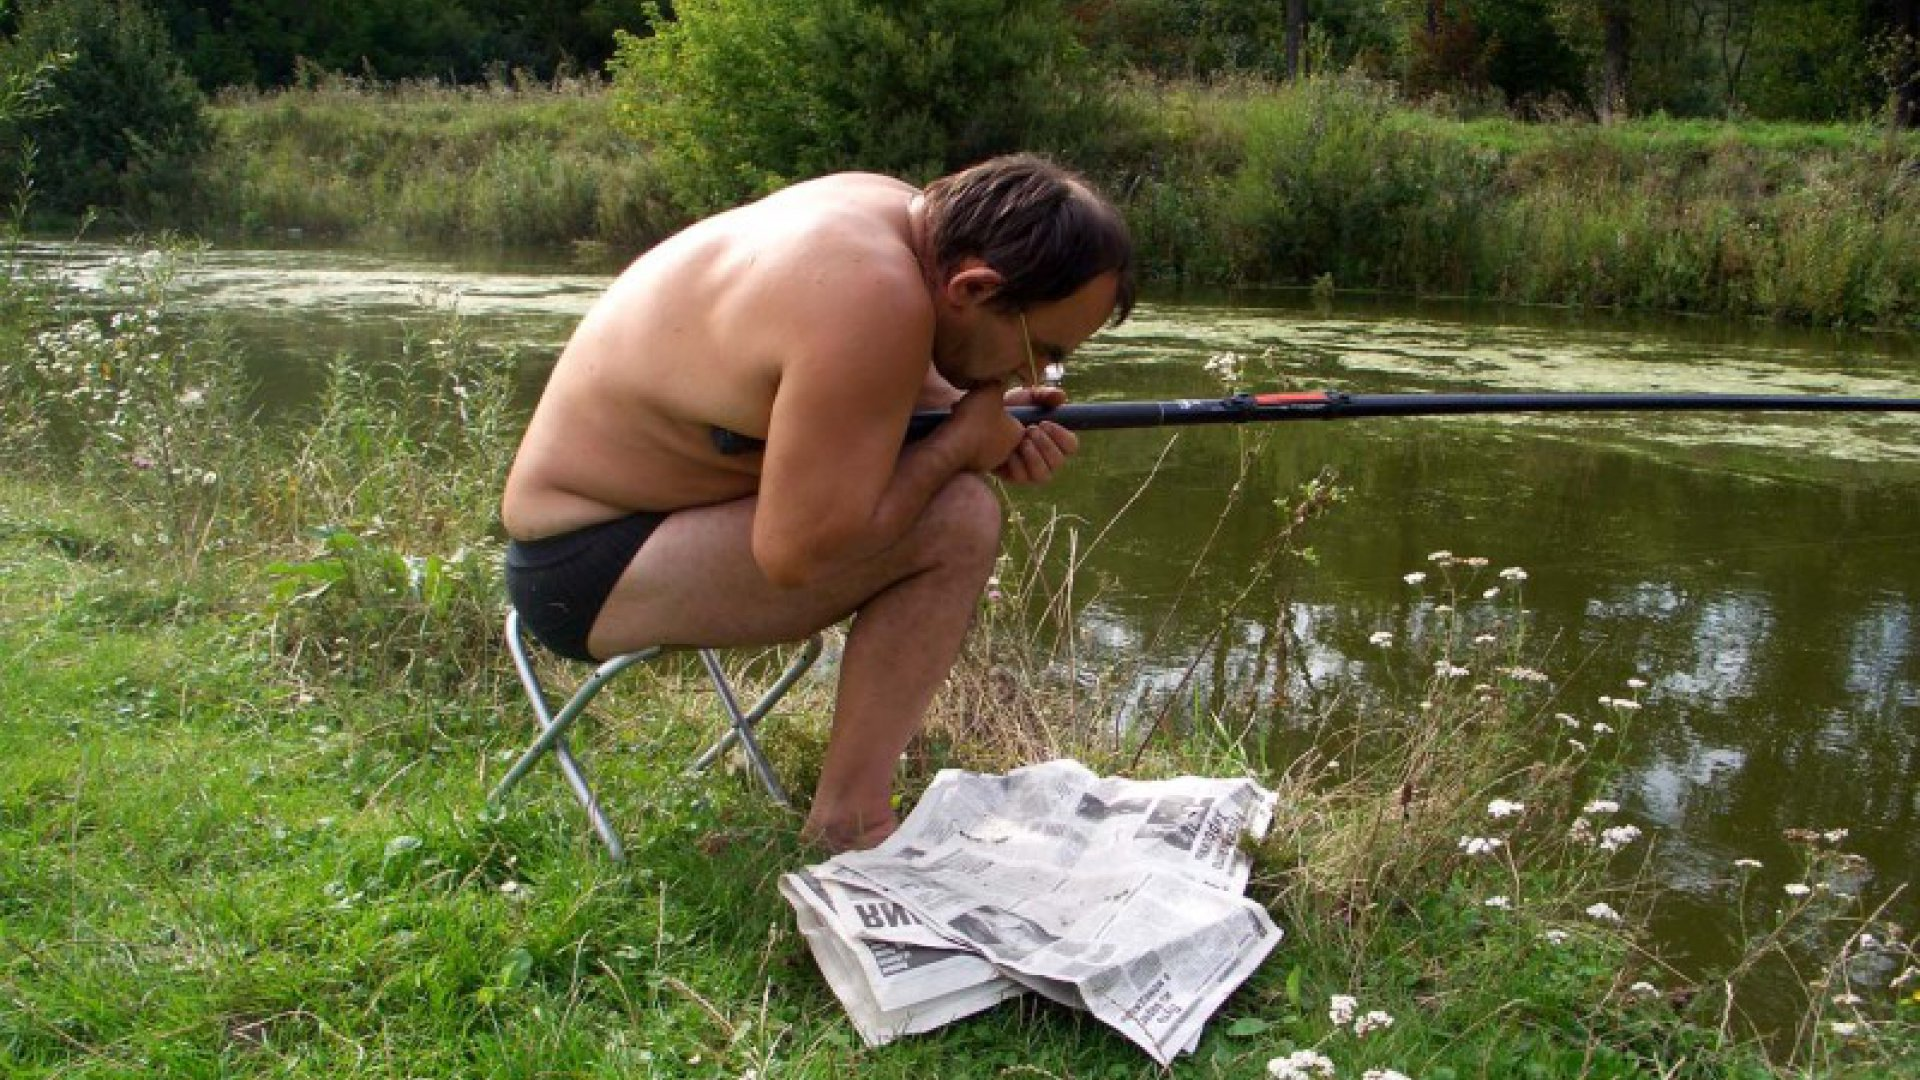 Free and funny images, pictures, photos and videos! Funny fishing photos free